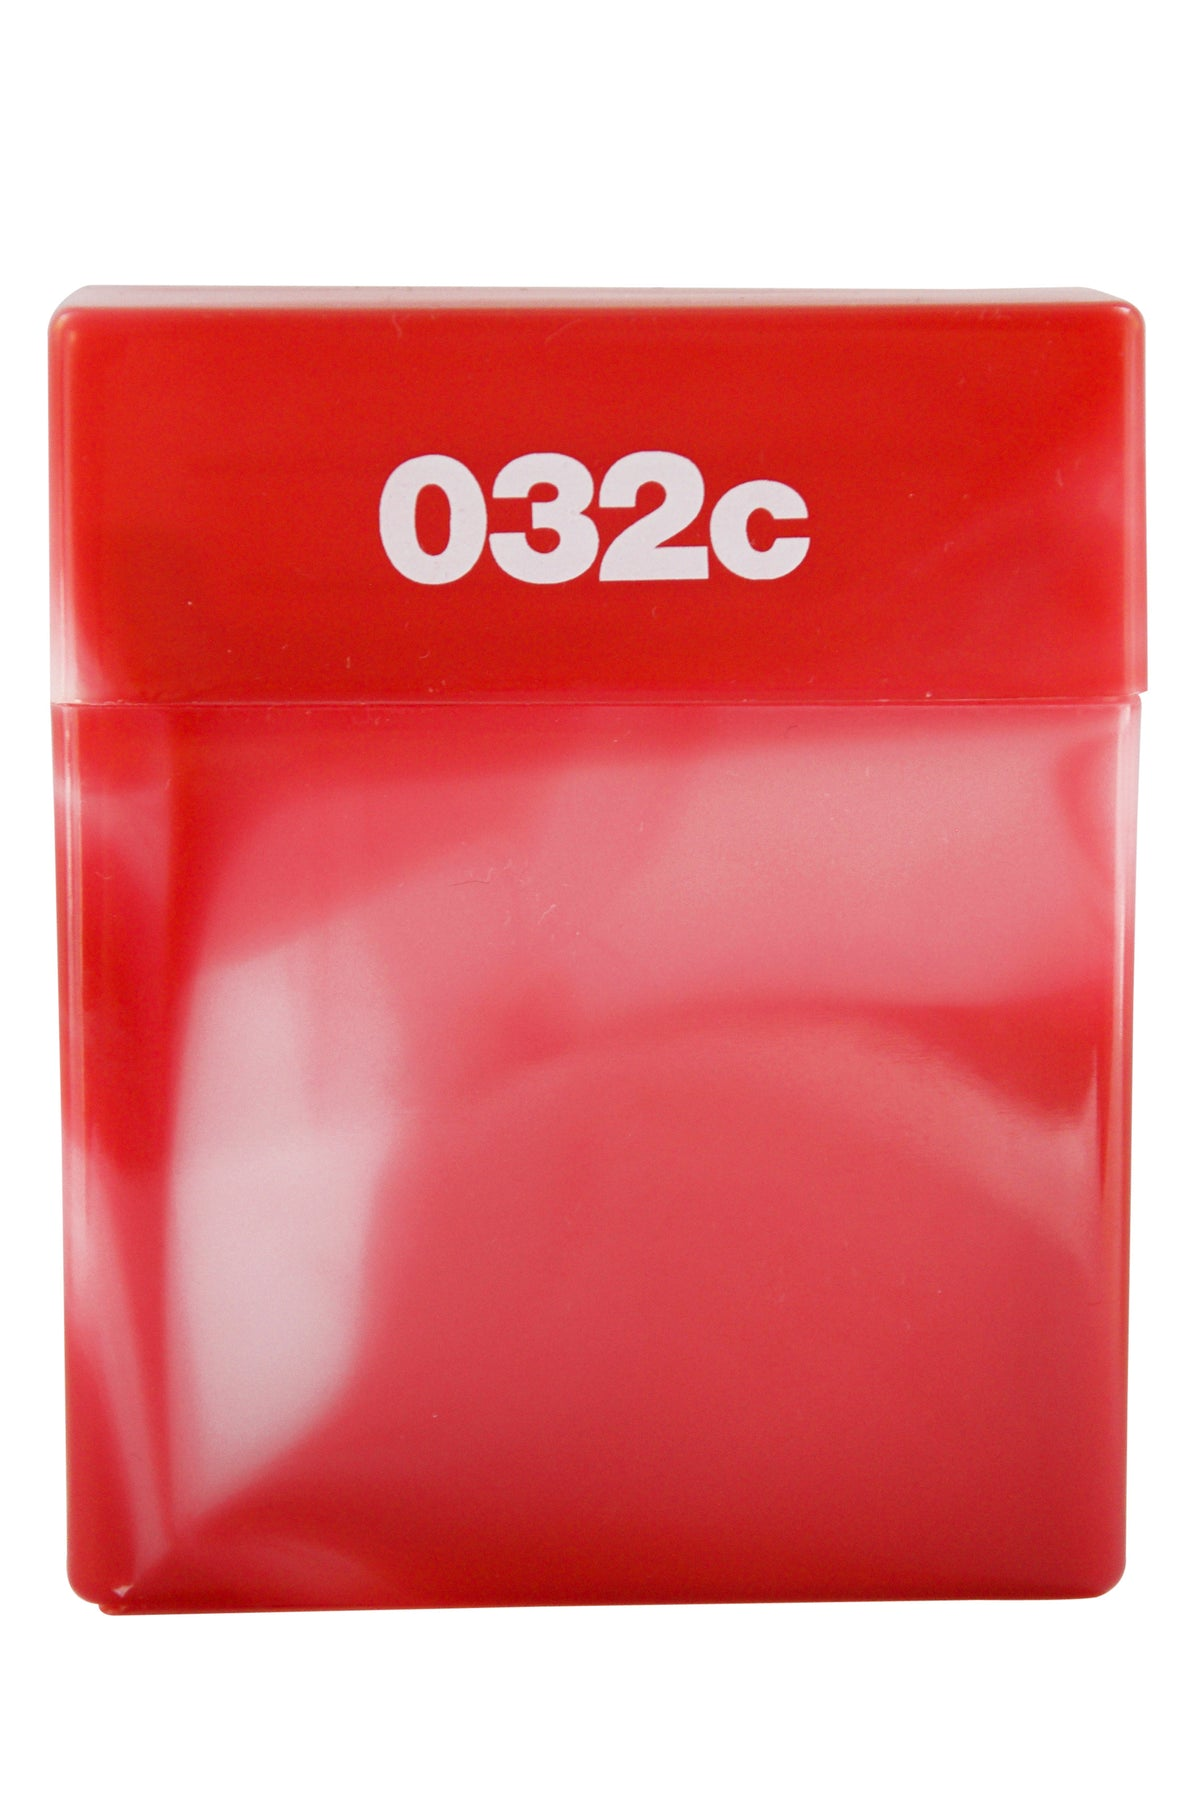 032c Smoker's Collection Case - 032c